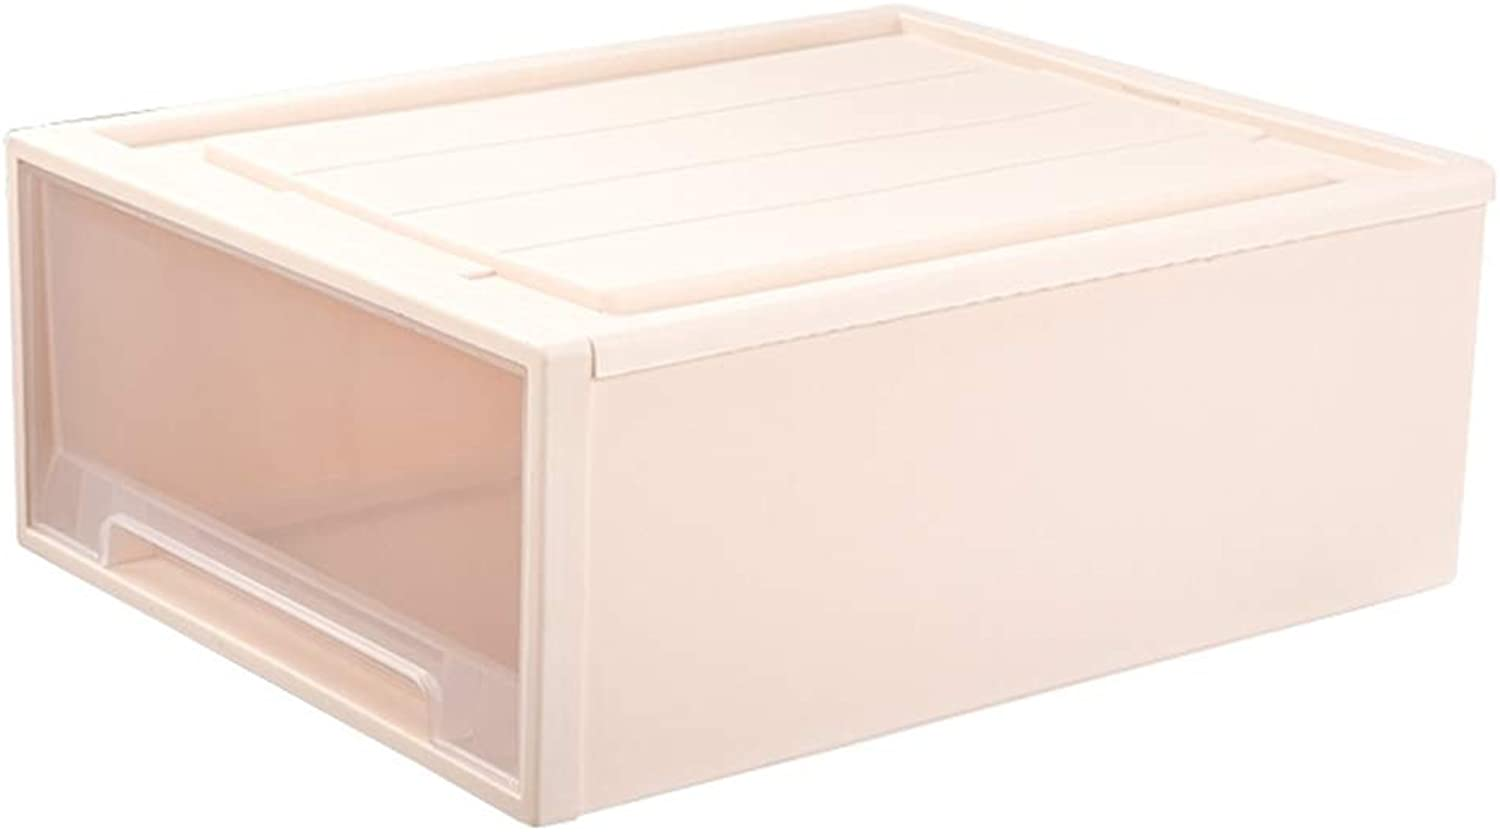 Storage Box Storage Bins Baskets Toy Box Home Containers Cubes Bin Box Gift Baskets Storage Ches-Transparent Plastic Large Capacity Multiple JINRONG (color   22L Single)